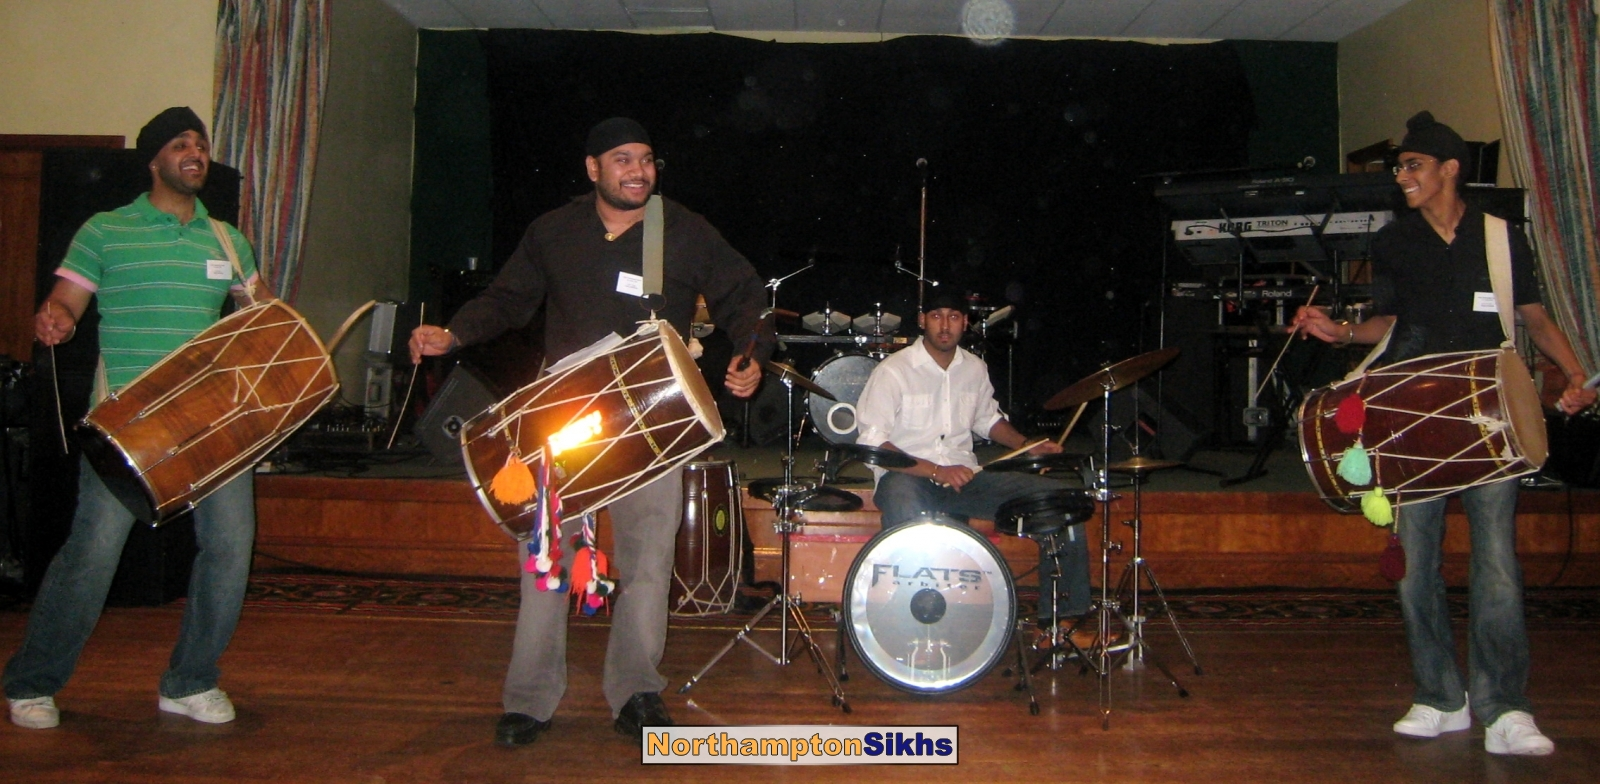 dholicious